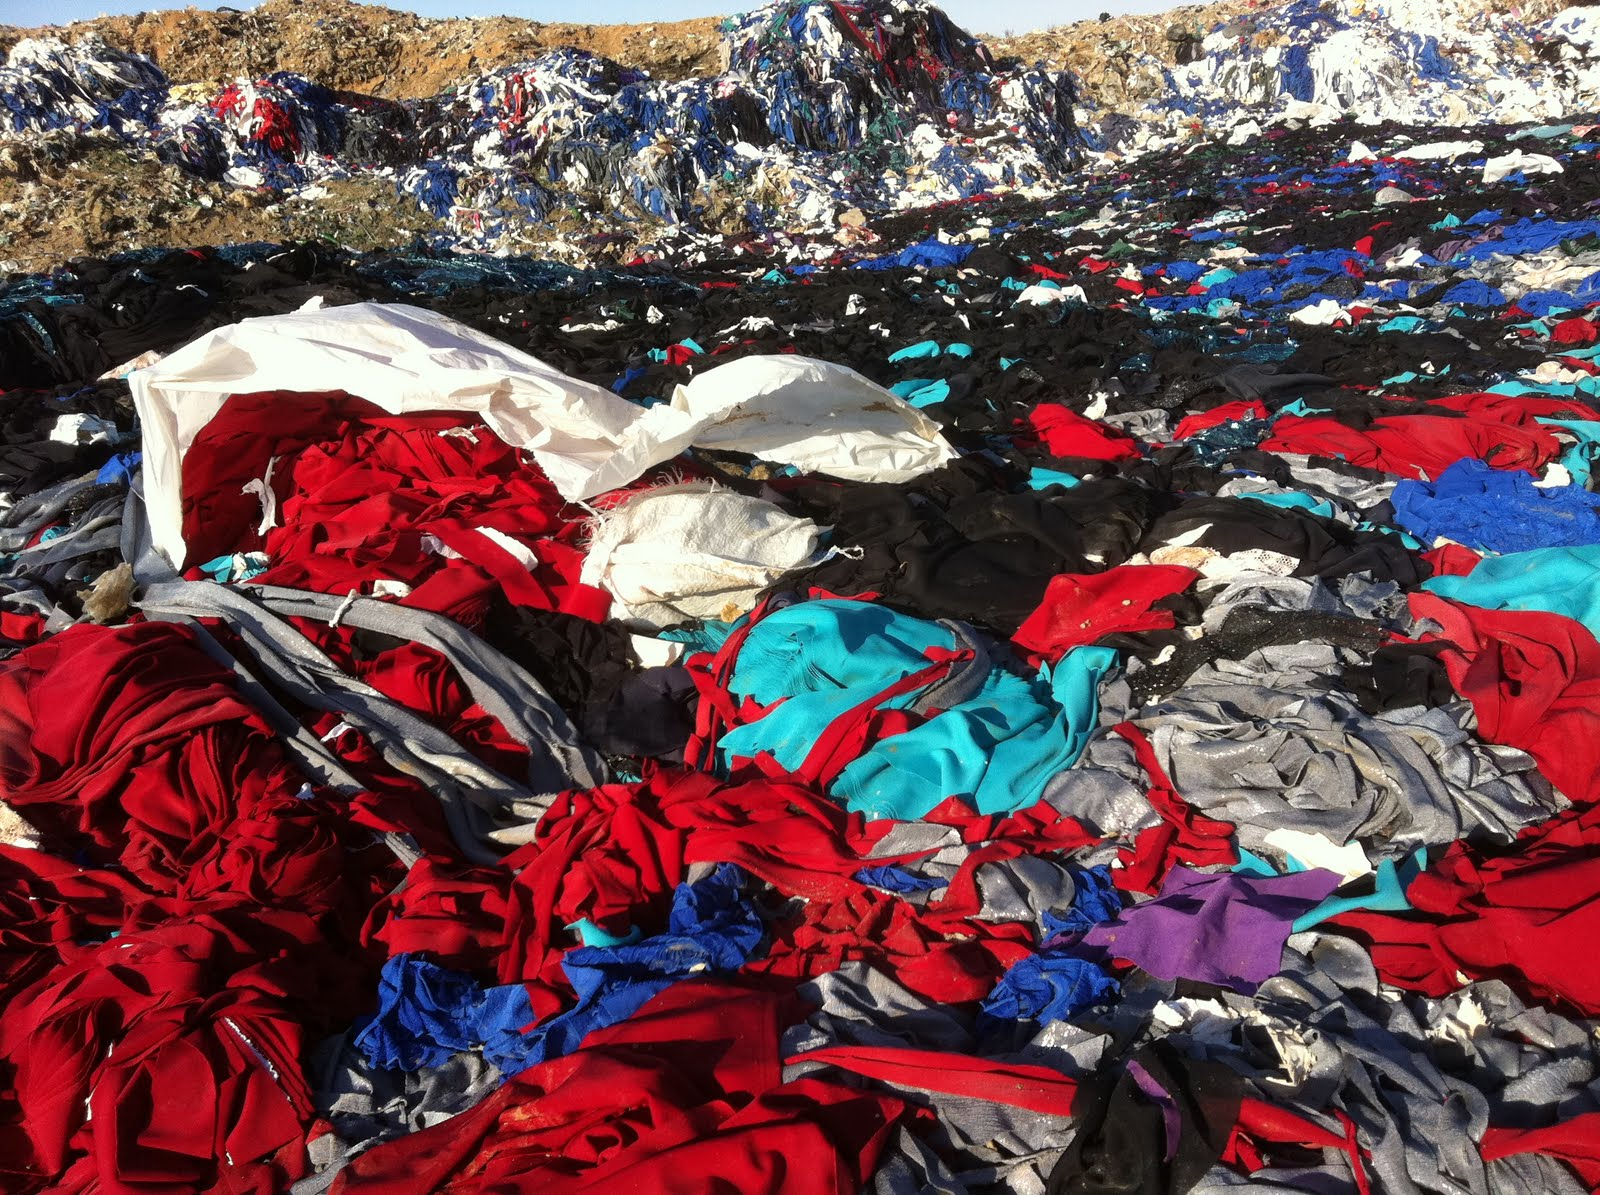 http://wastebiorefining.blogspot.co.uk/2011/04/collecting-system-for-textile-wastes.html